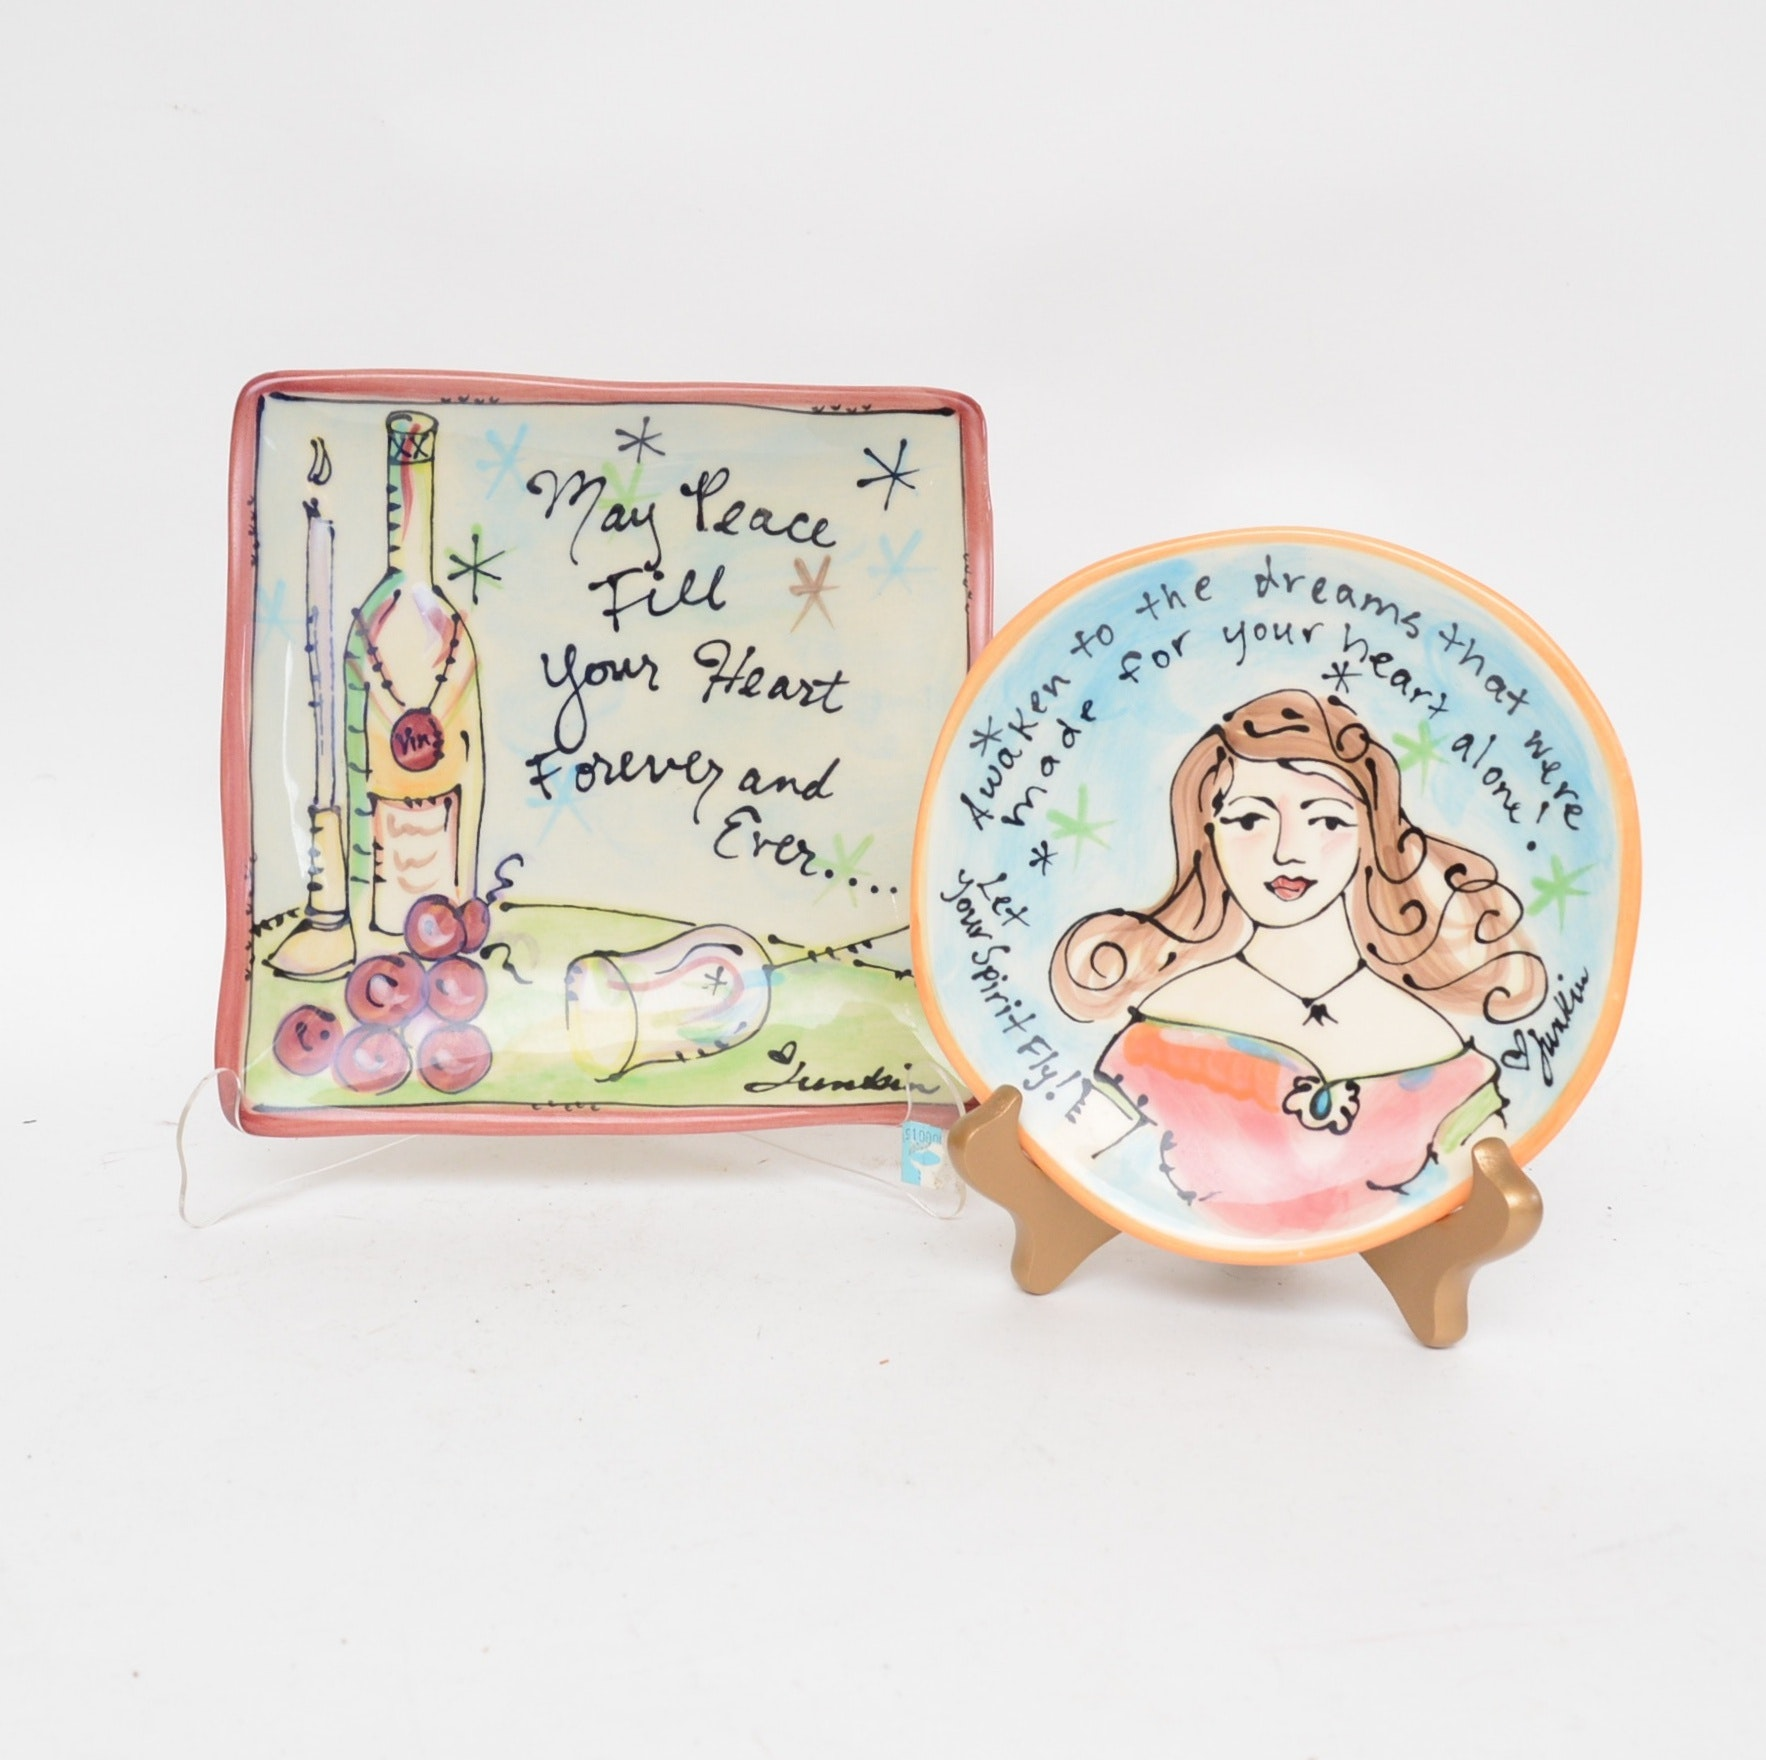 Hand-Painted Ceramic Plates by Julia Junkin